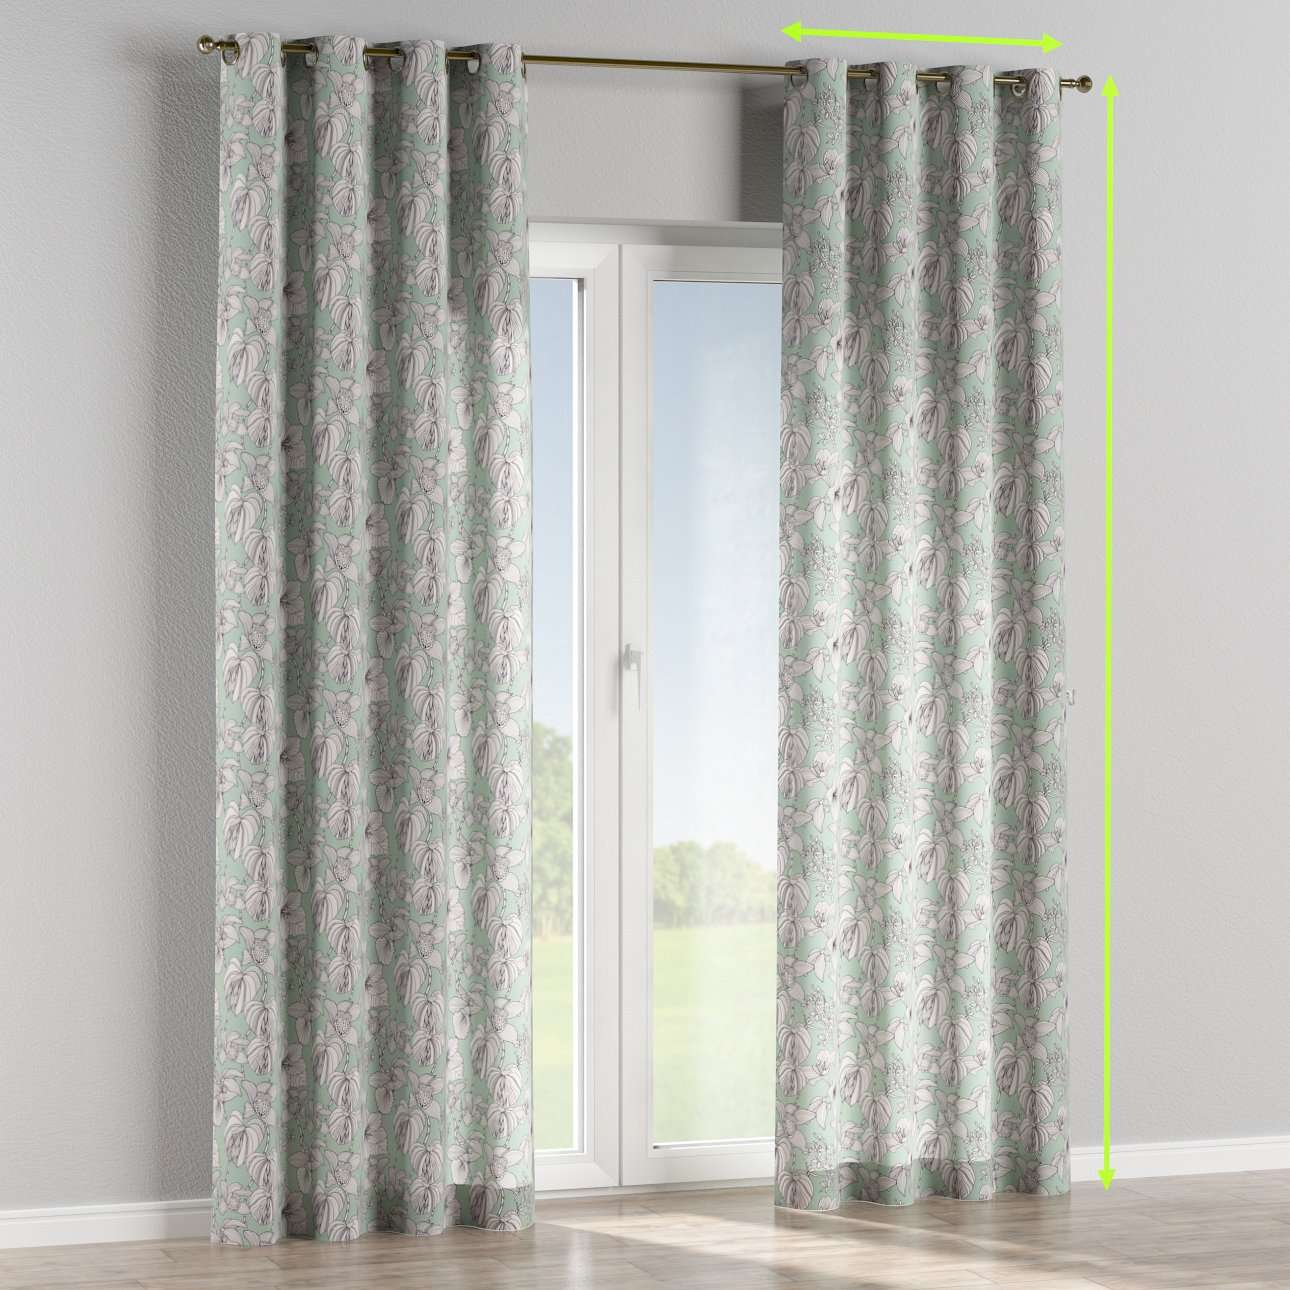 Eyelet curtains in collection Brooklyn, fabric: 137-76